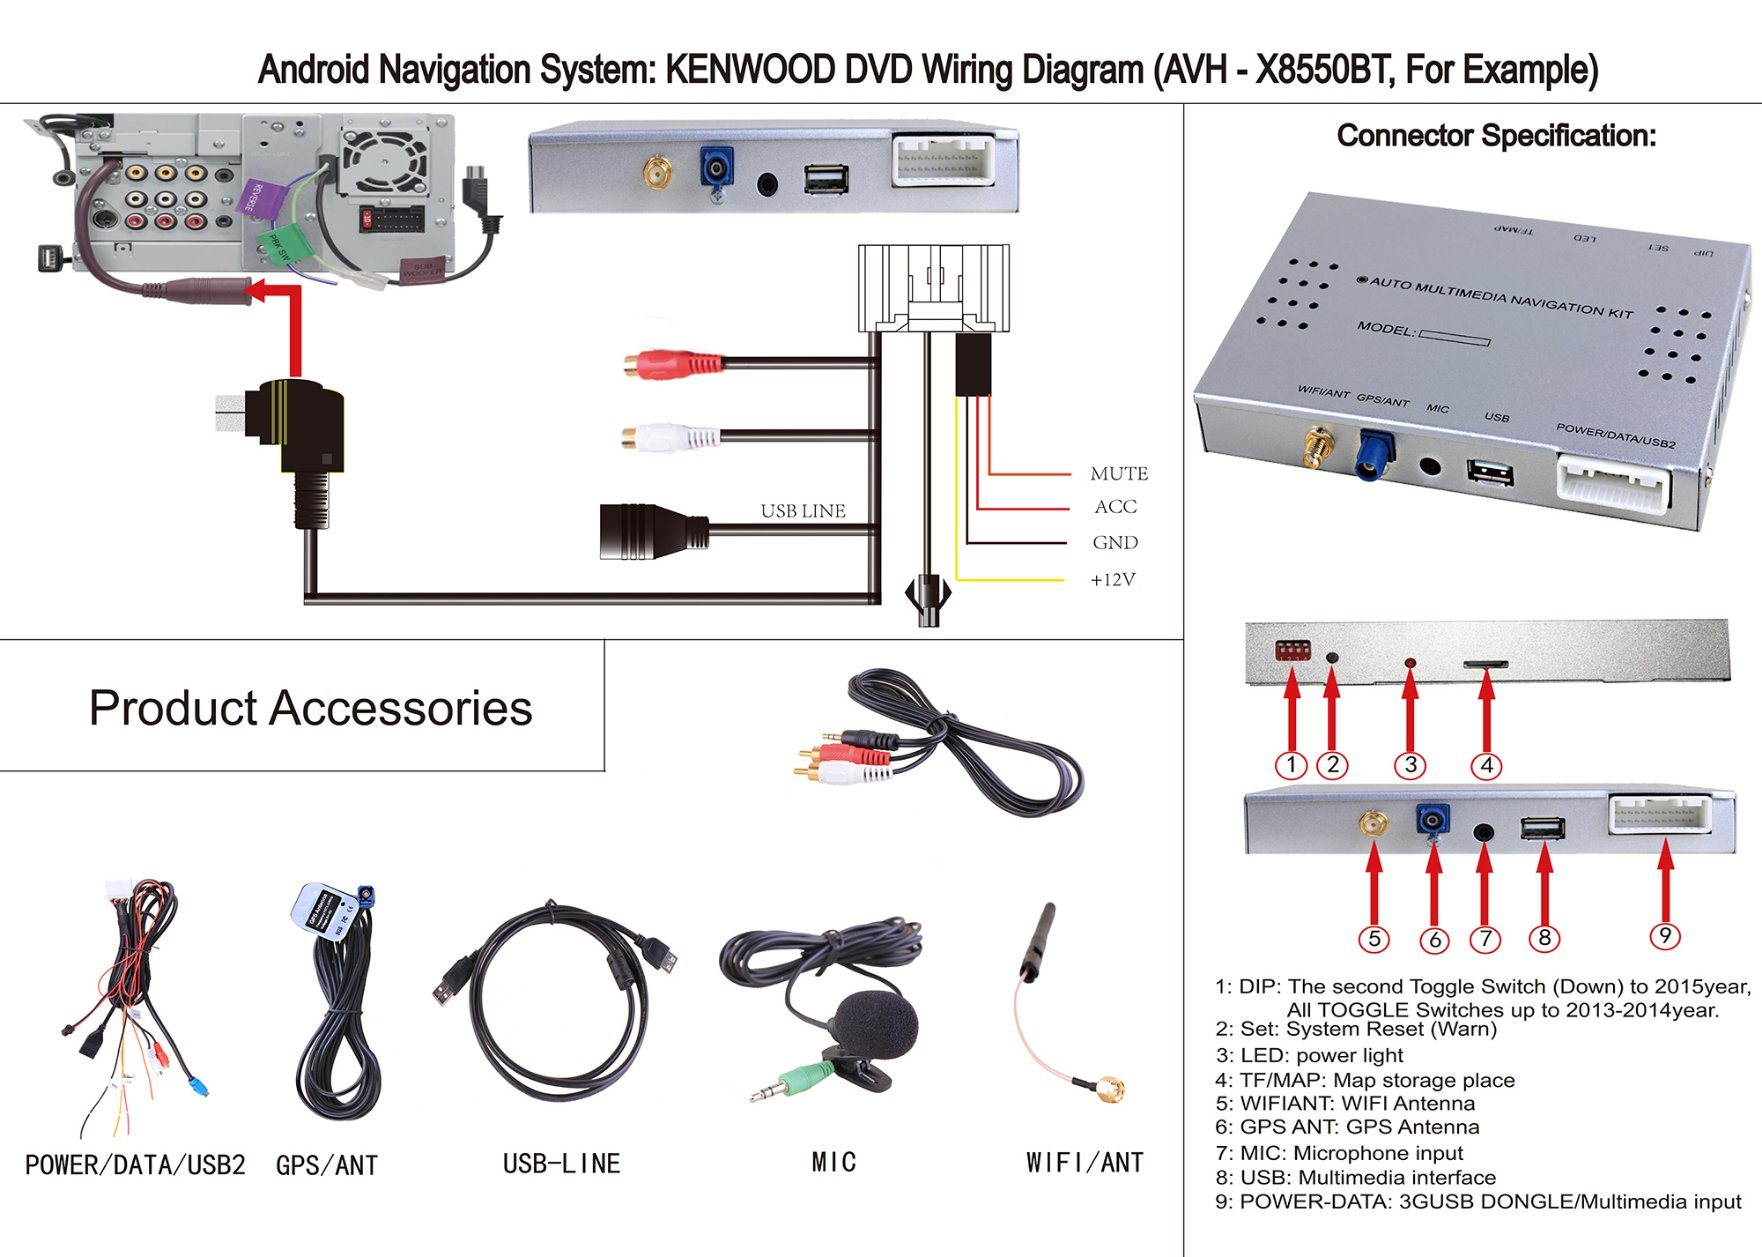 Alpine Navigation Wiring Diagram Just Another Blog Speaker China Gps Box For Pioneer Kenwood With Dvd Player Rh Carllt En Made In Com Amp Radio